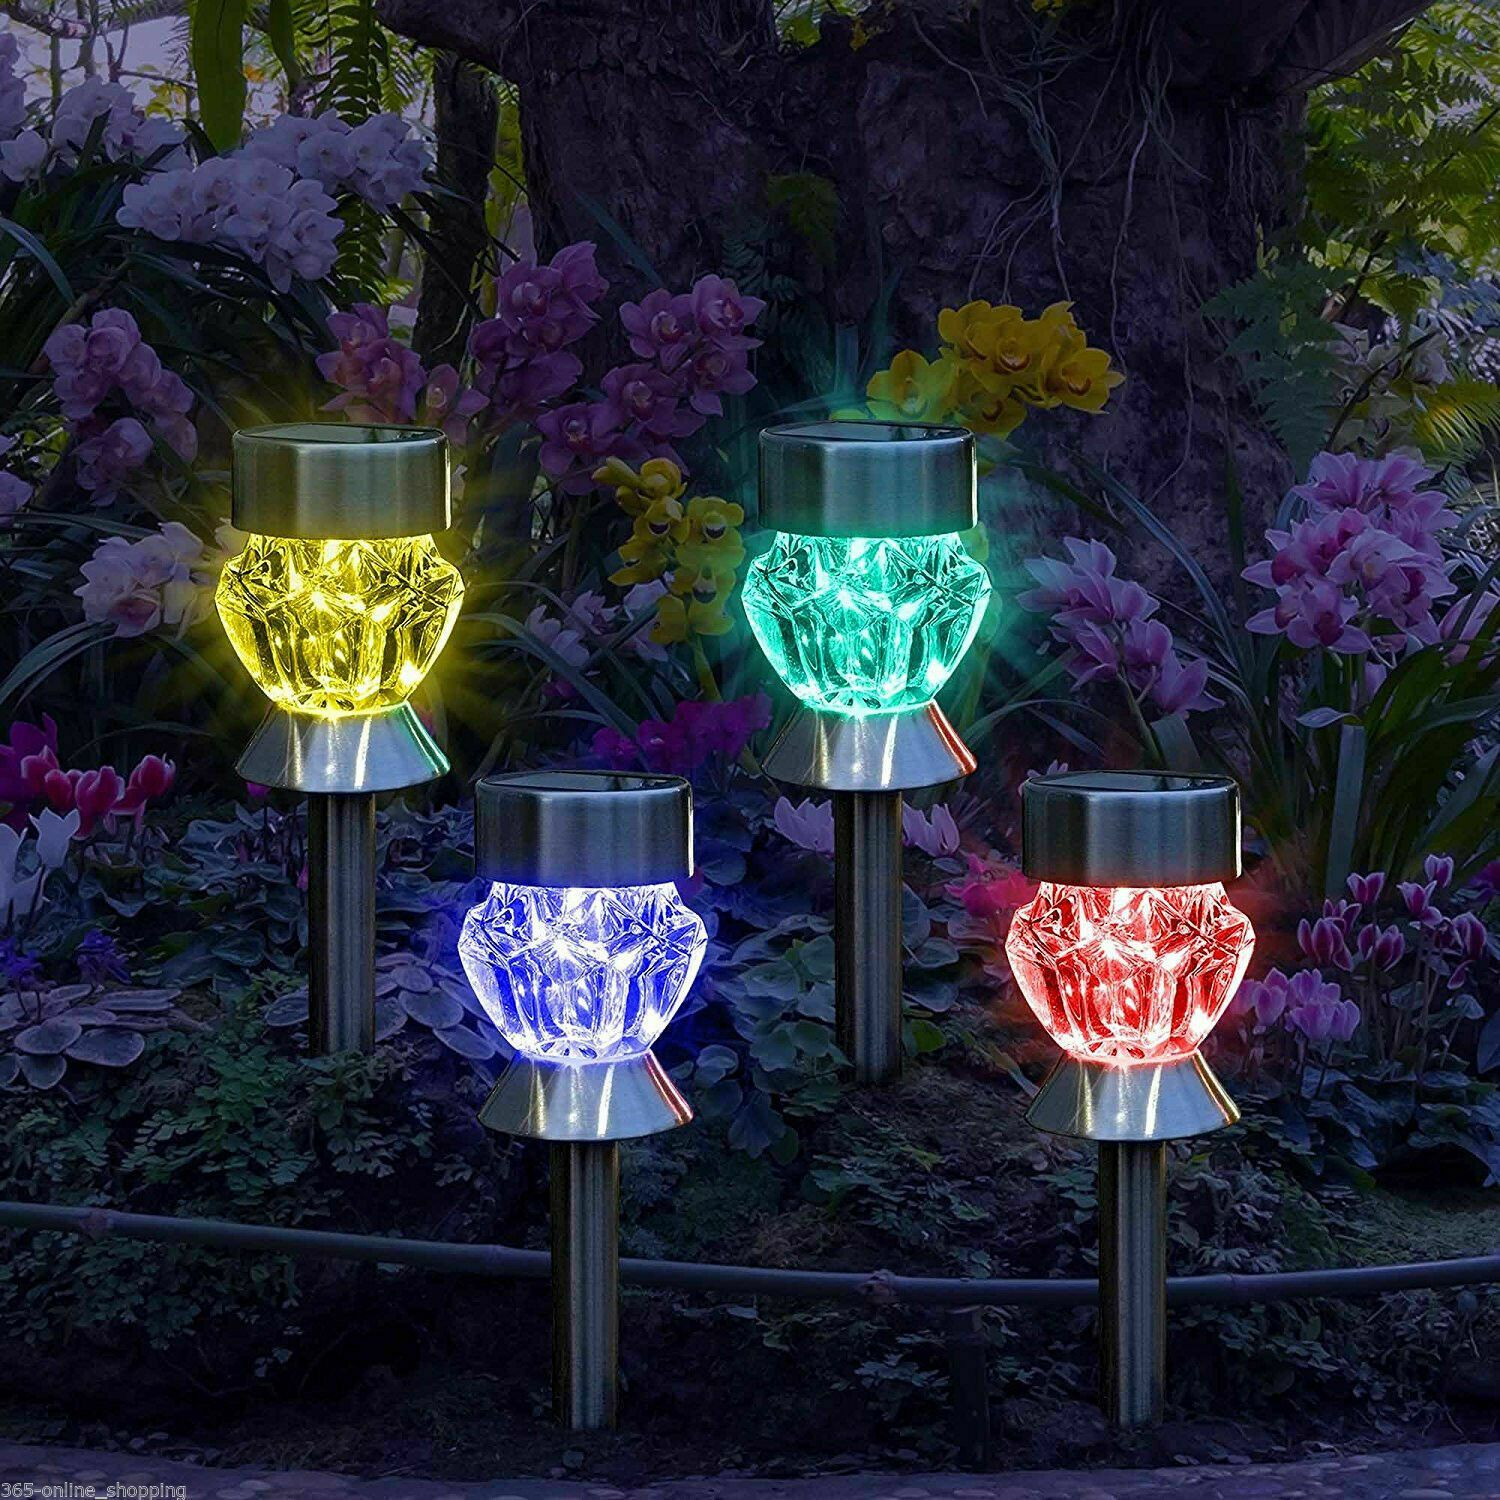 Details about Solar Powered Colour Changing Garden Lights